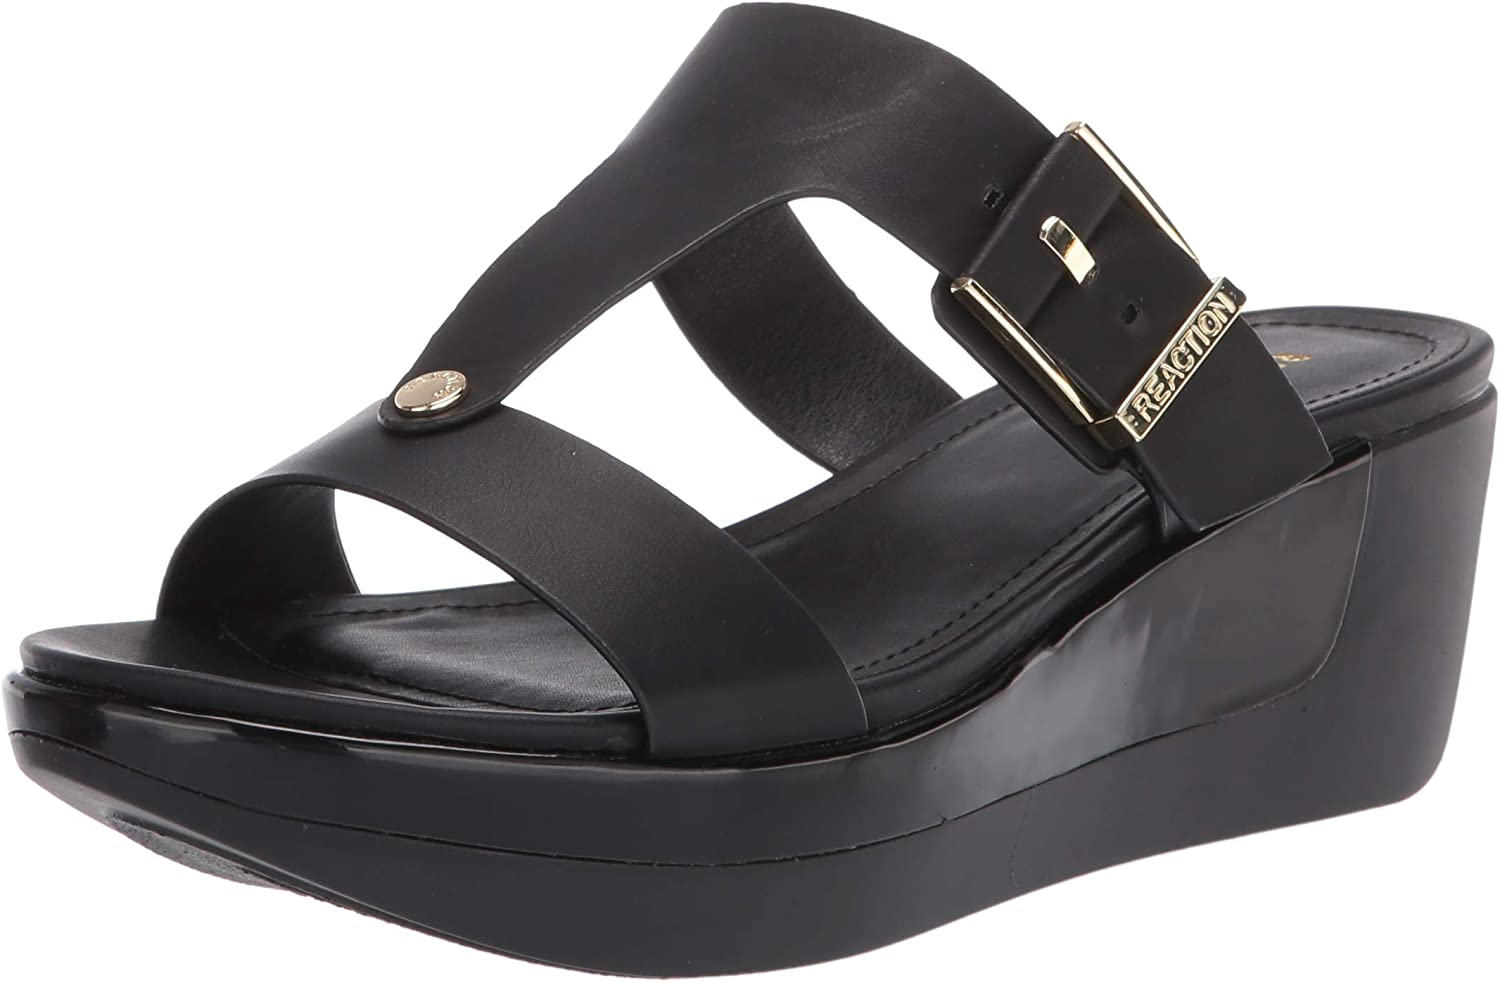 Kenneth Cole REACTION Wedge At Price reduction the price of surprise Sandal Women's